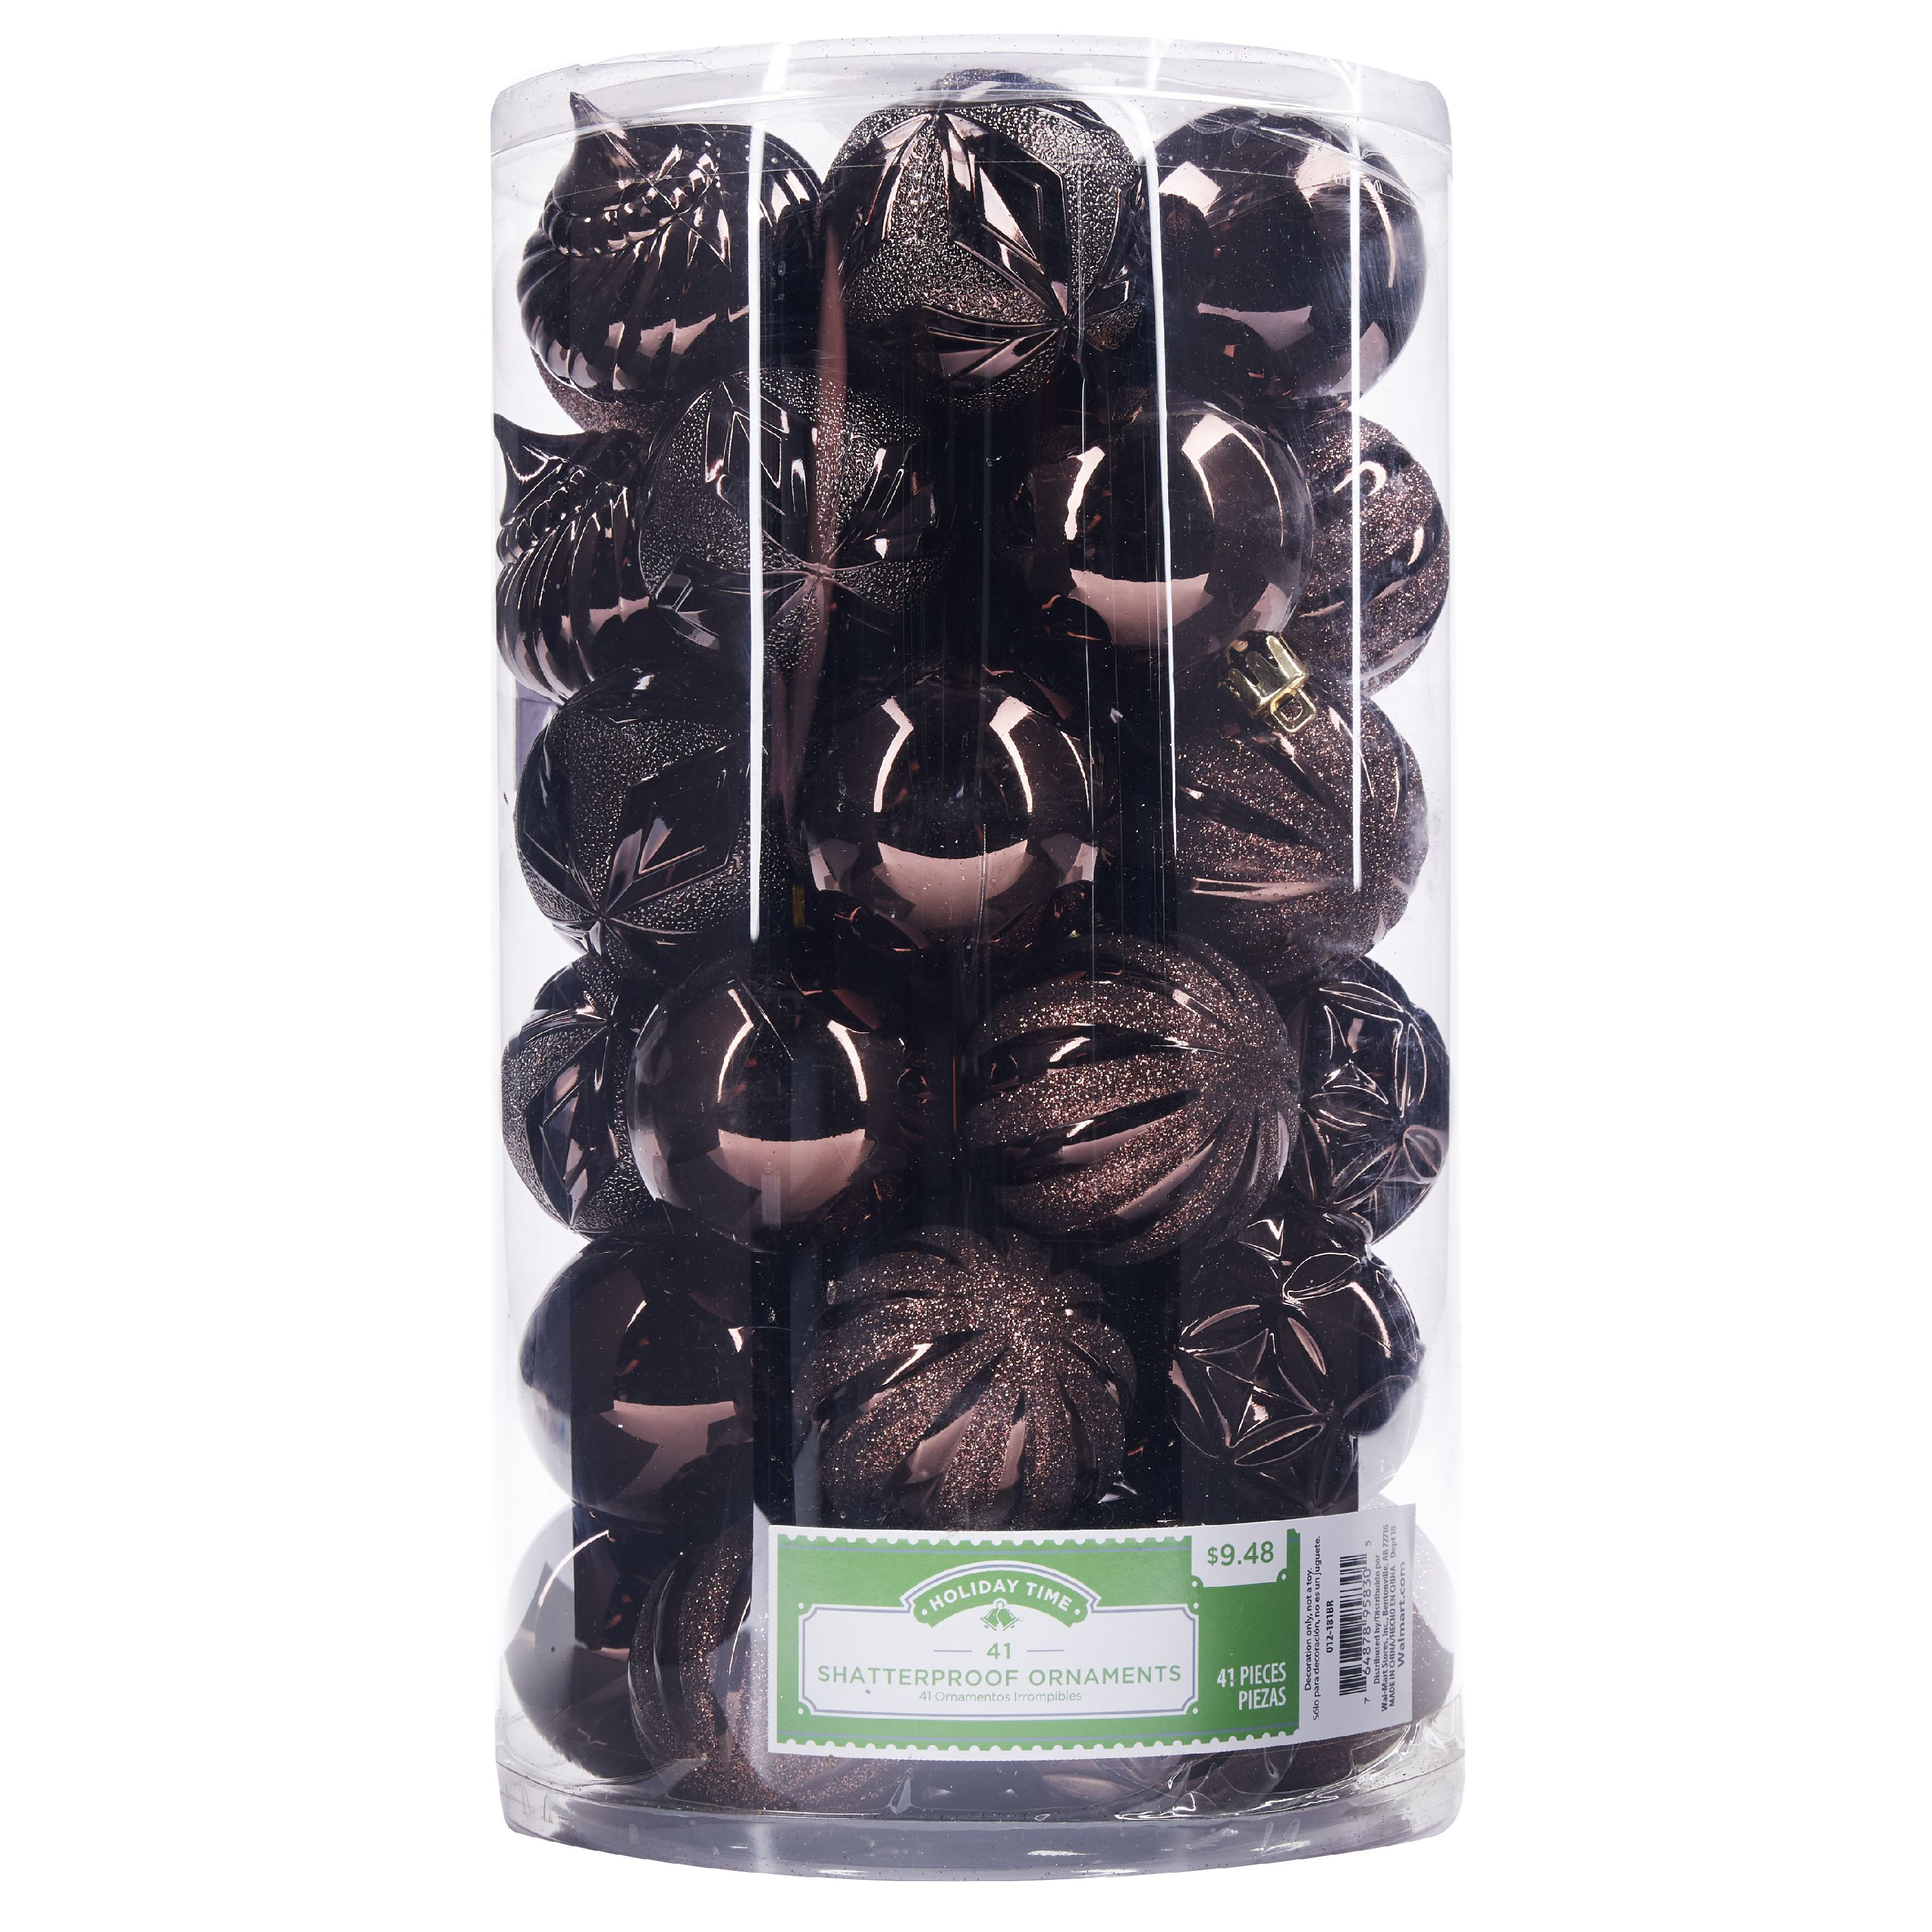 Holiday Time Shatterproof Ornaments, Brown, 41 Count